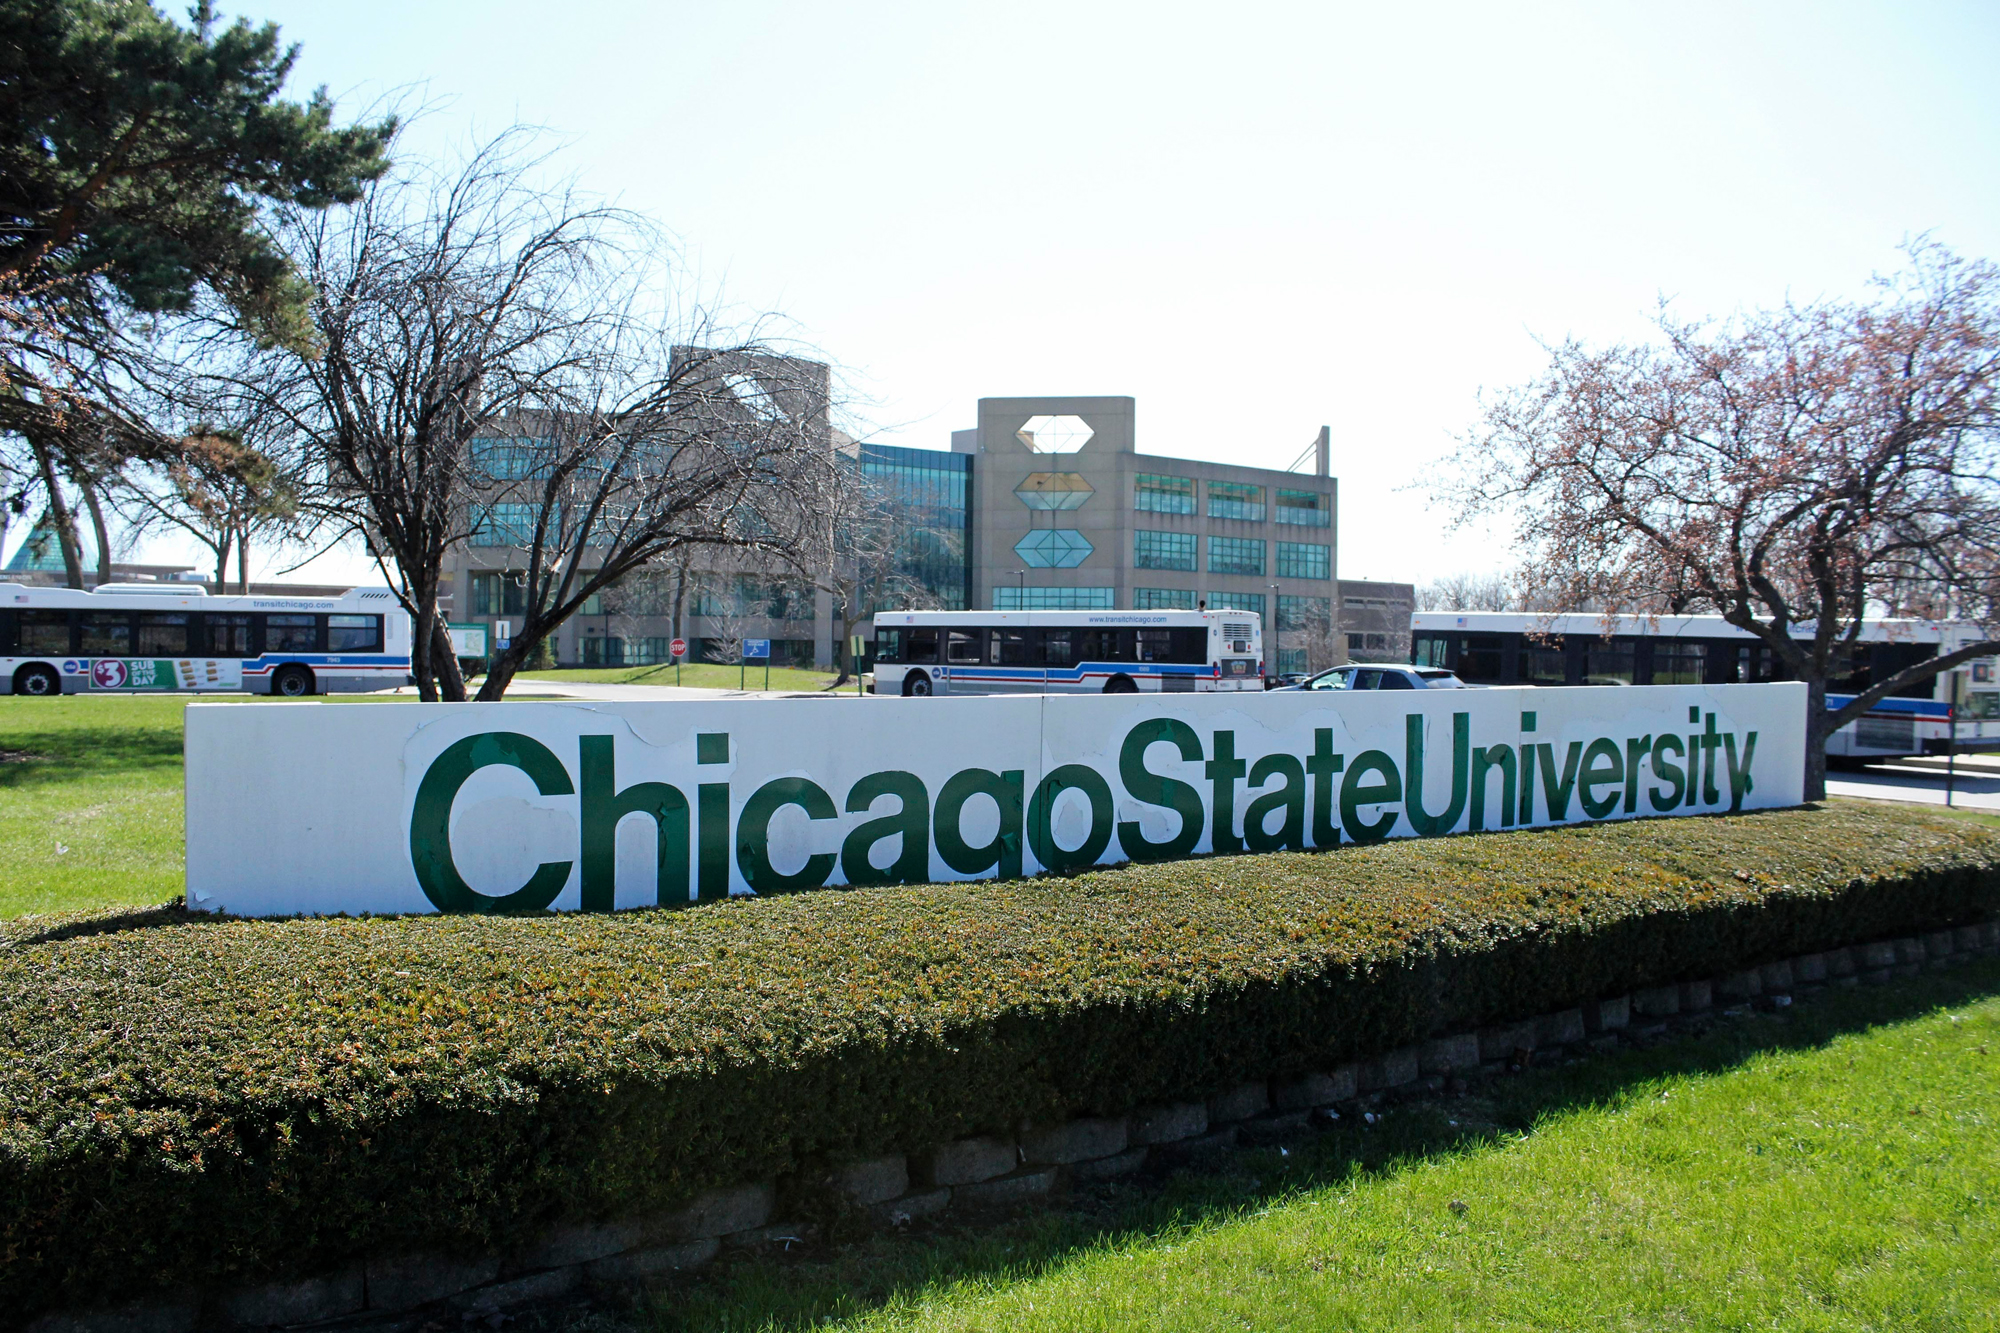 In this April 12, 2016 photo, a sign is seen at the entrance to Chicago State University in Chicago.